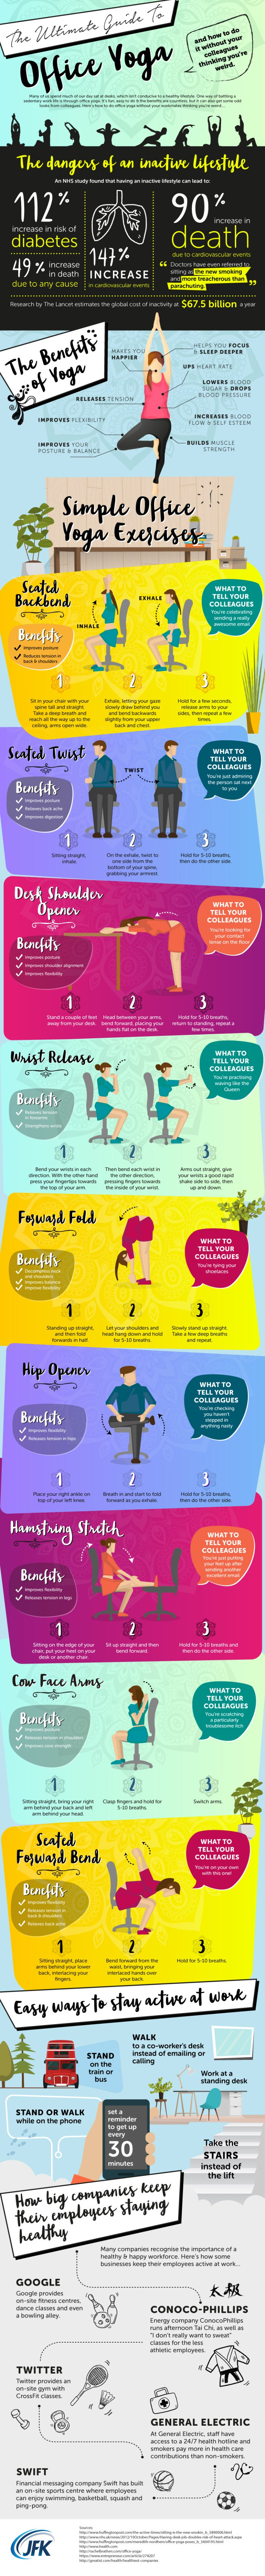 Ultimate Guide To Office Yoga [Infographic]